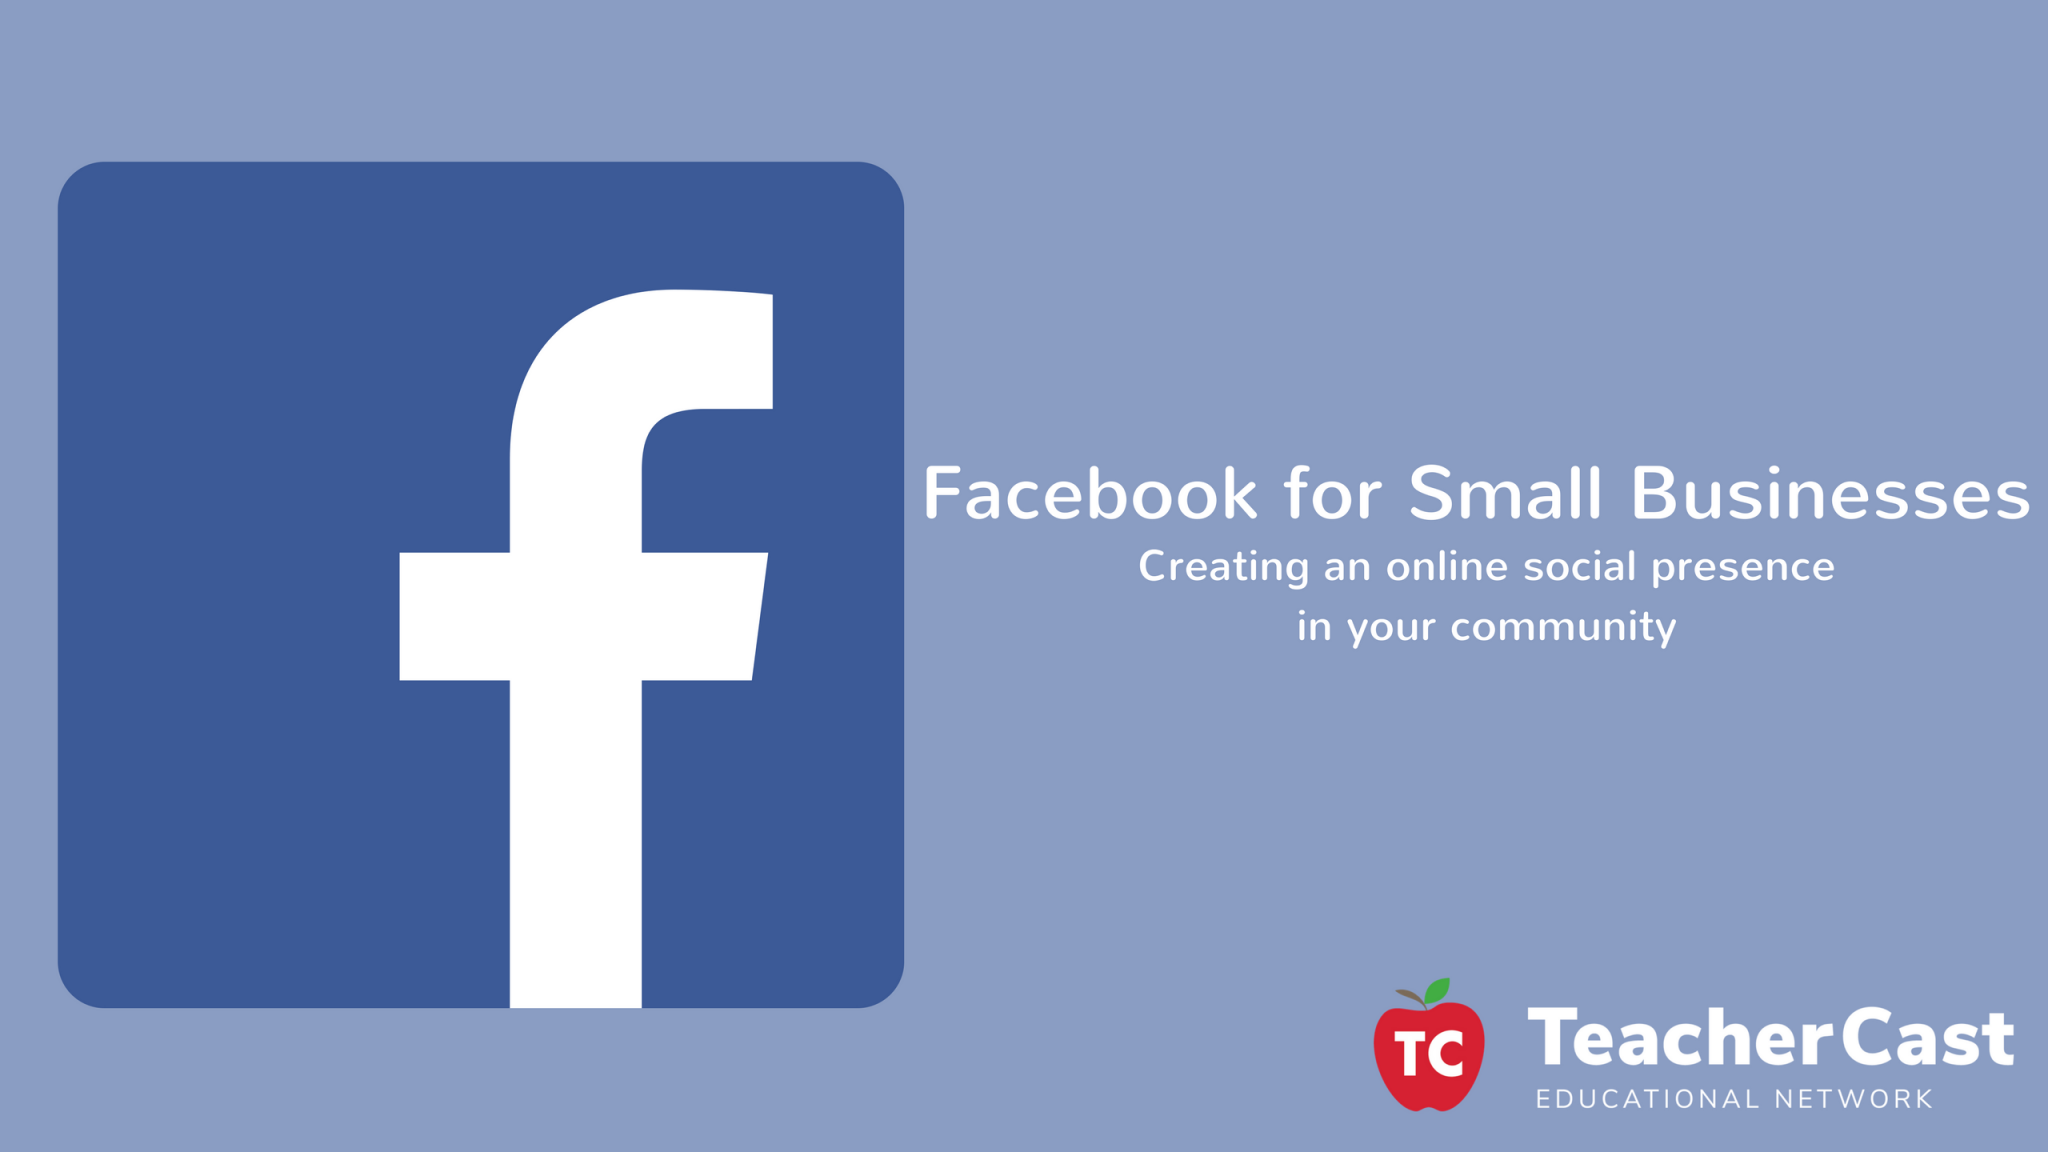 Workshop: Facebook 101 for Small Businesses